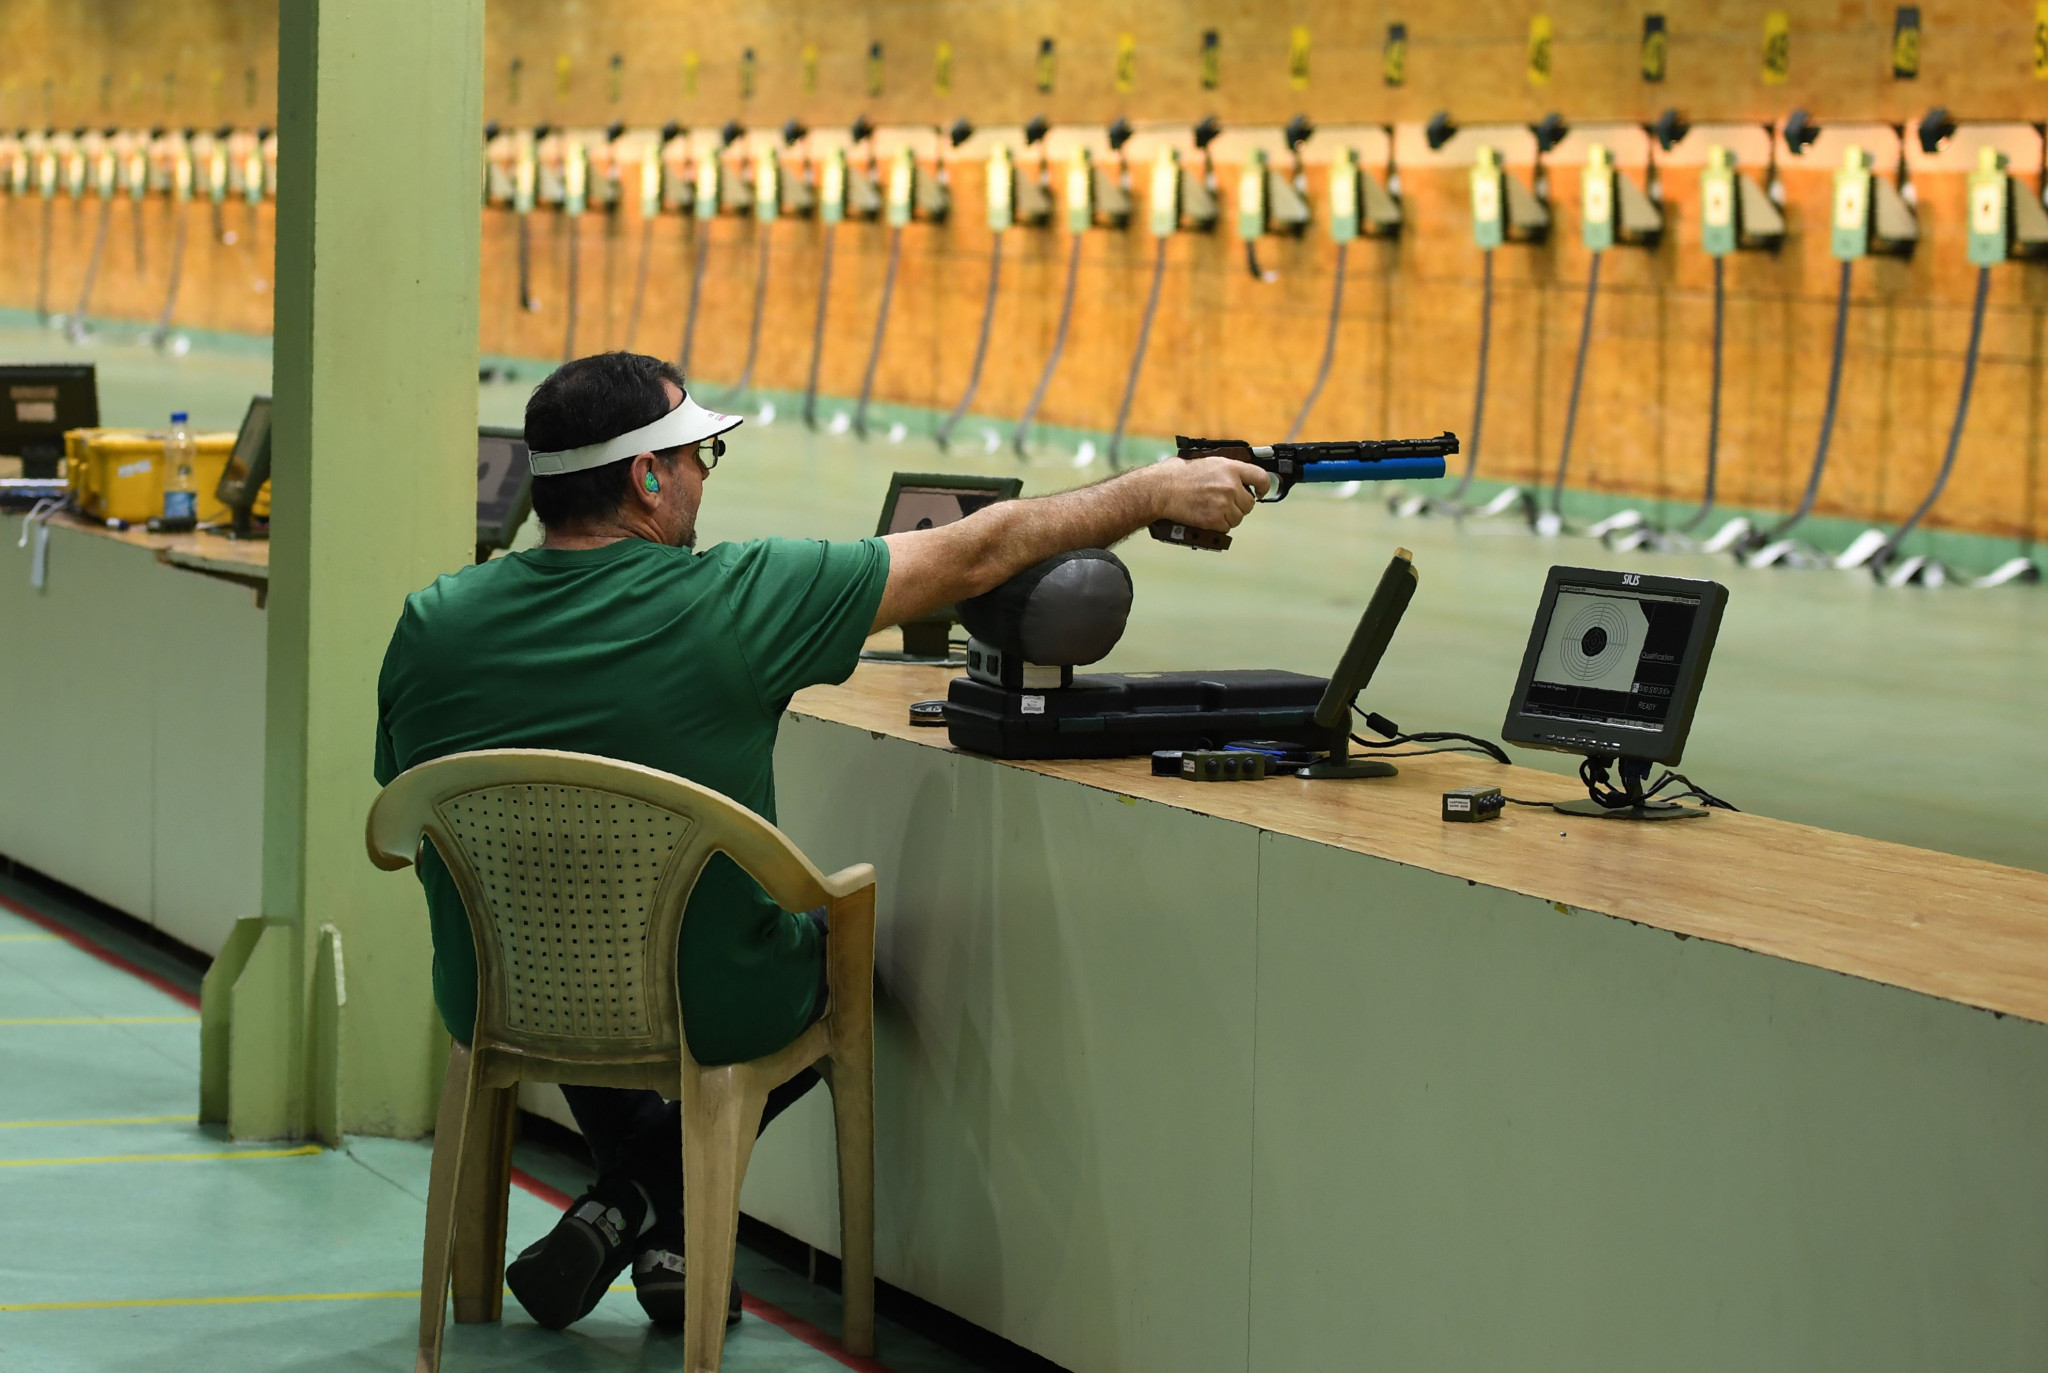 Confusion reigns over whether Pakistani athletes will be able to compete at the ISSF World Cup in New Delhi starting tomorrow ©Getty Images